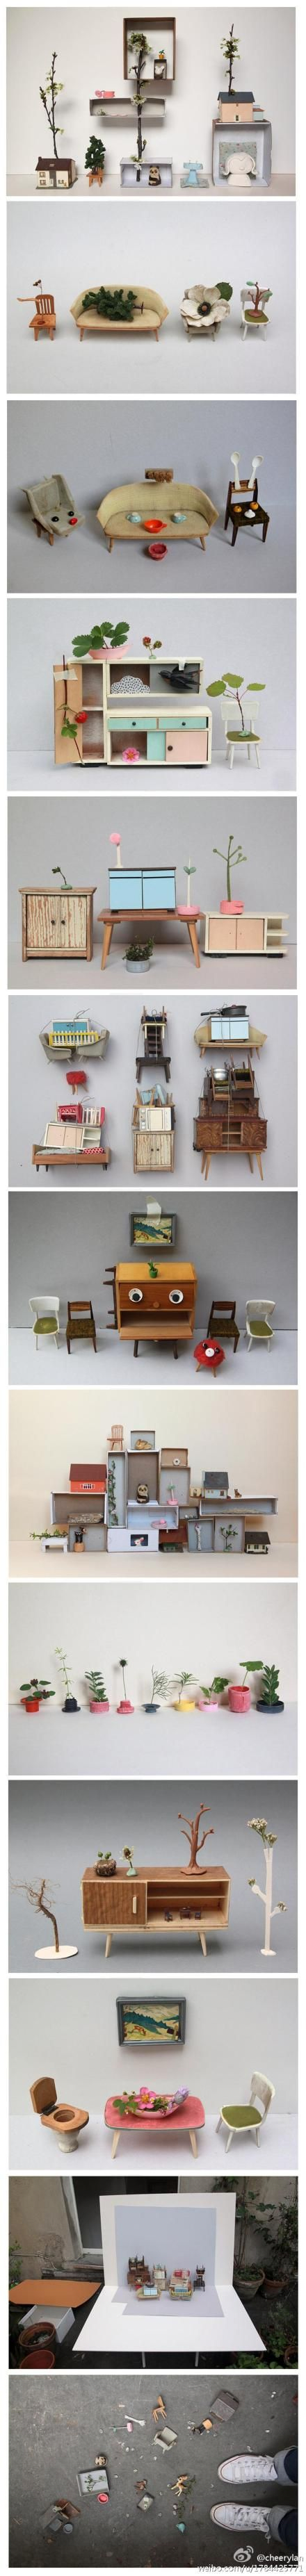 Miniature furniture (images only) | Source: Peach  收集到 @ Duitang